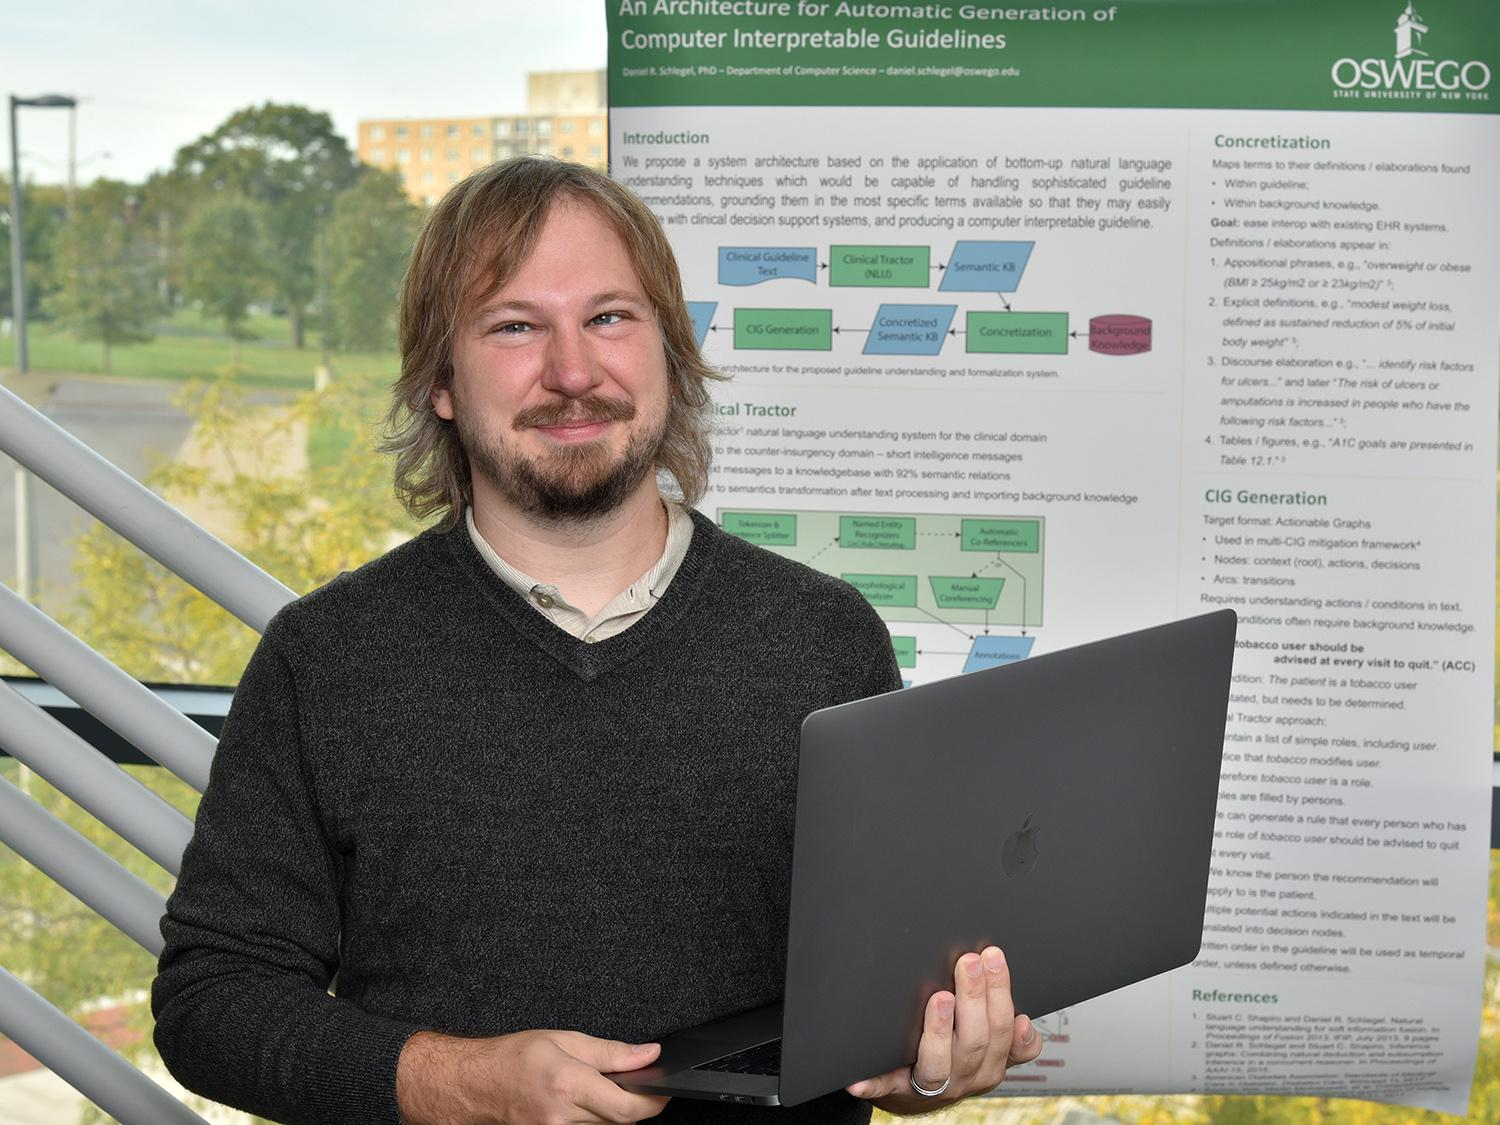 Daniel Schlegel with his research